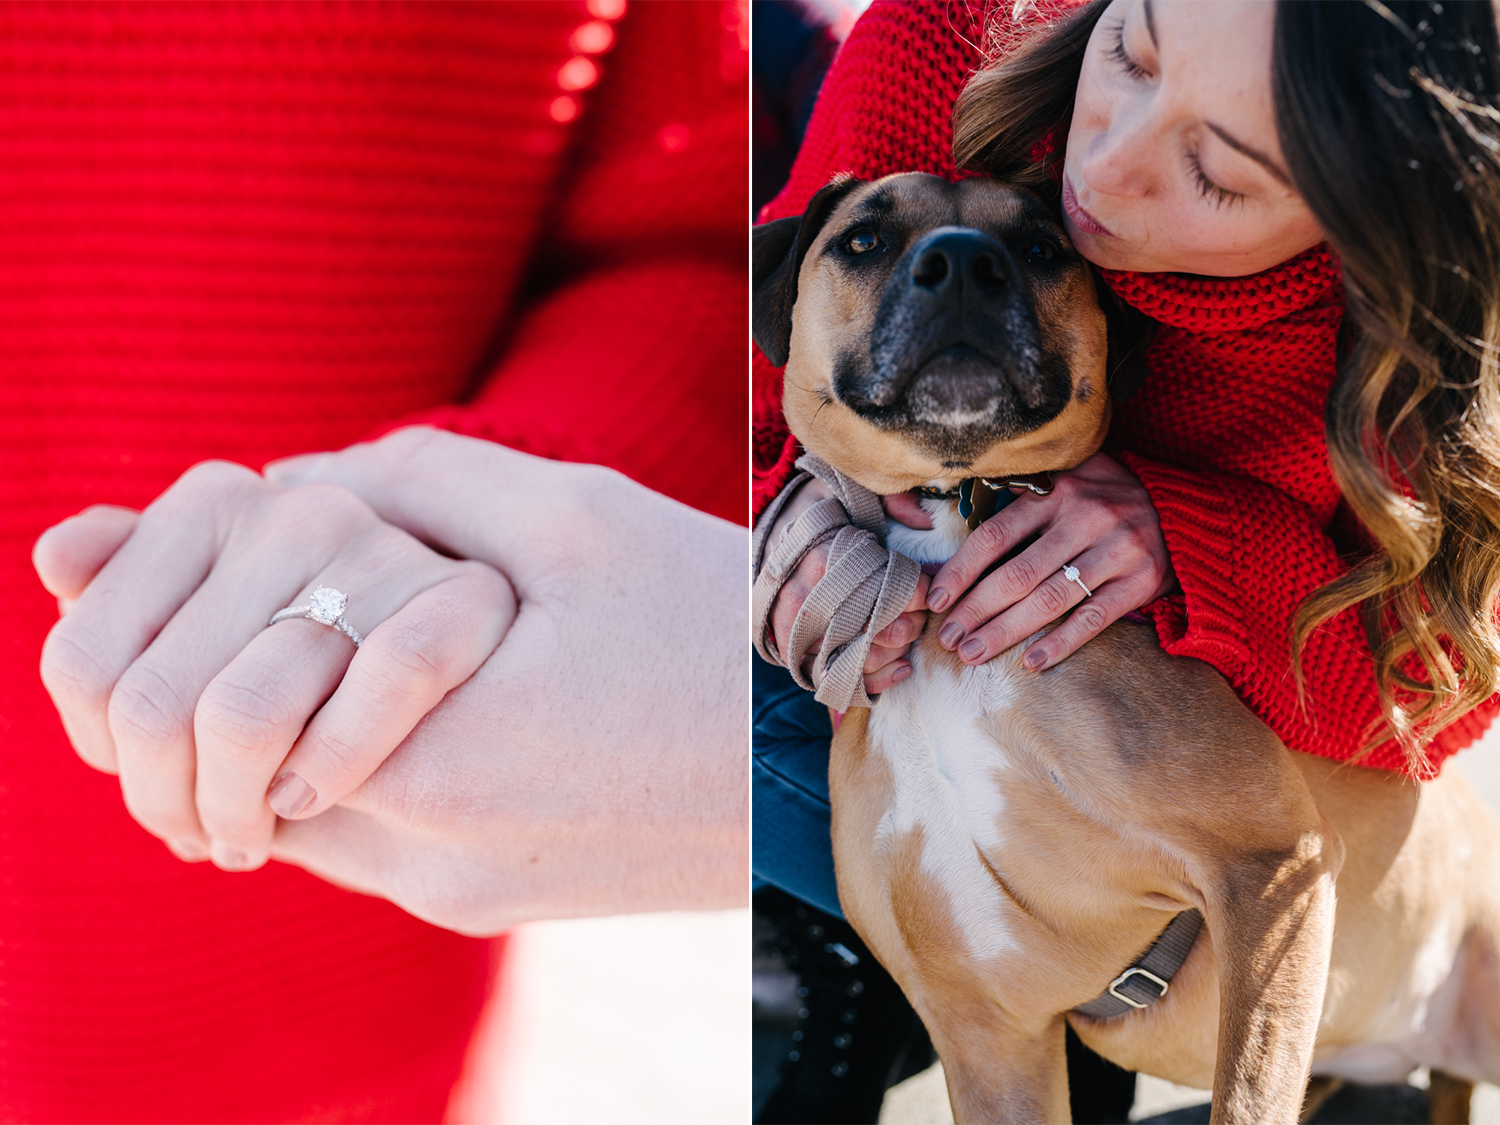 LSP Engagement Session- Dogs and Engagement Photos- Olivia Christina Photo.jpg